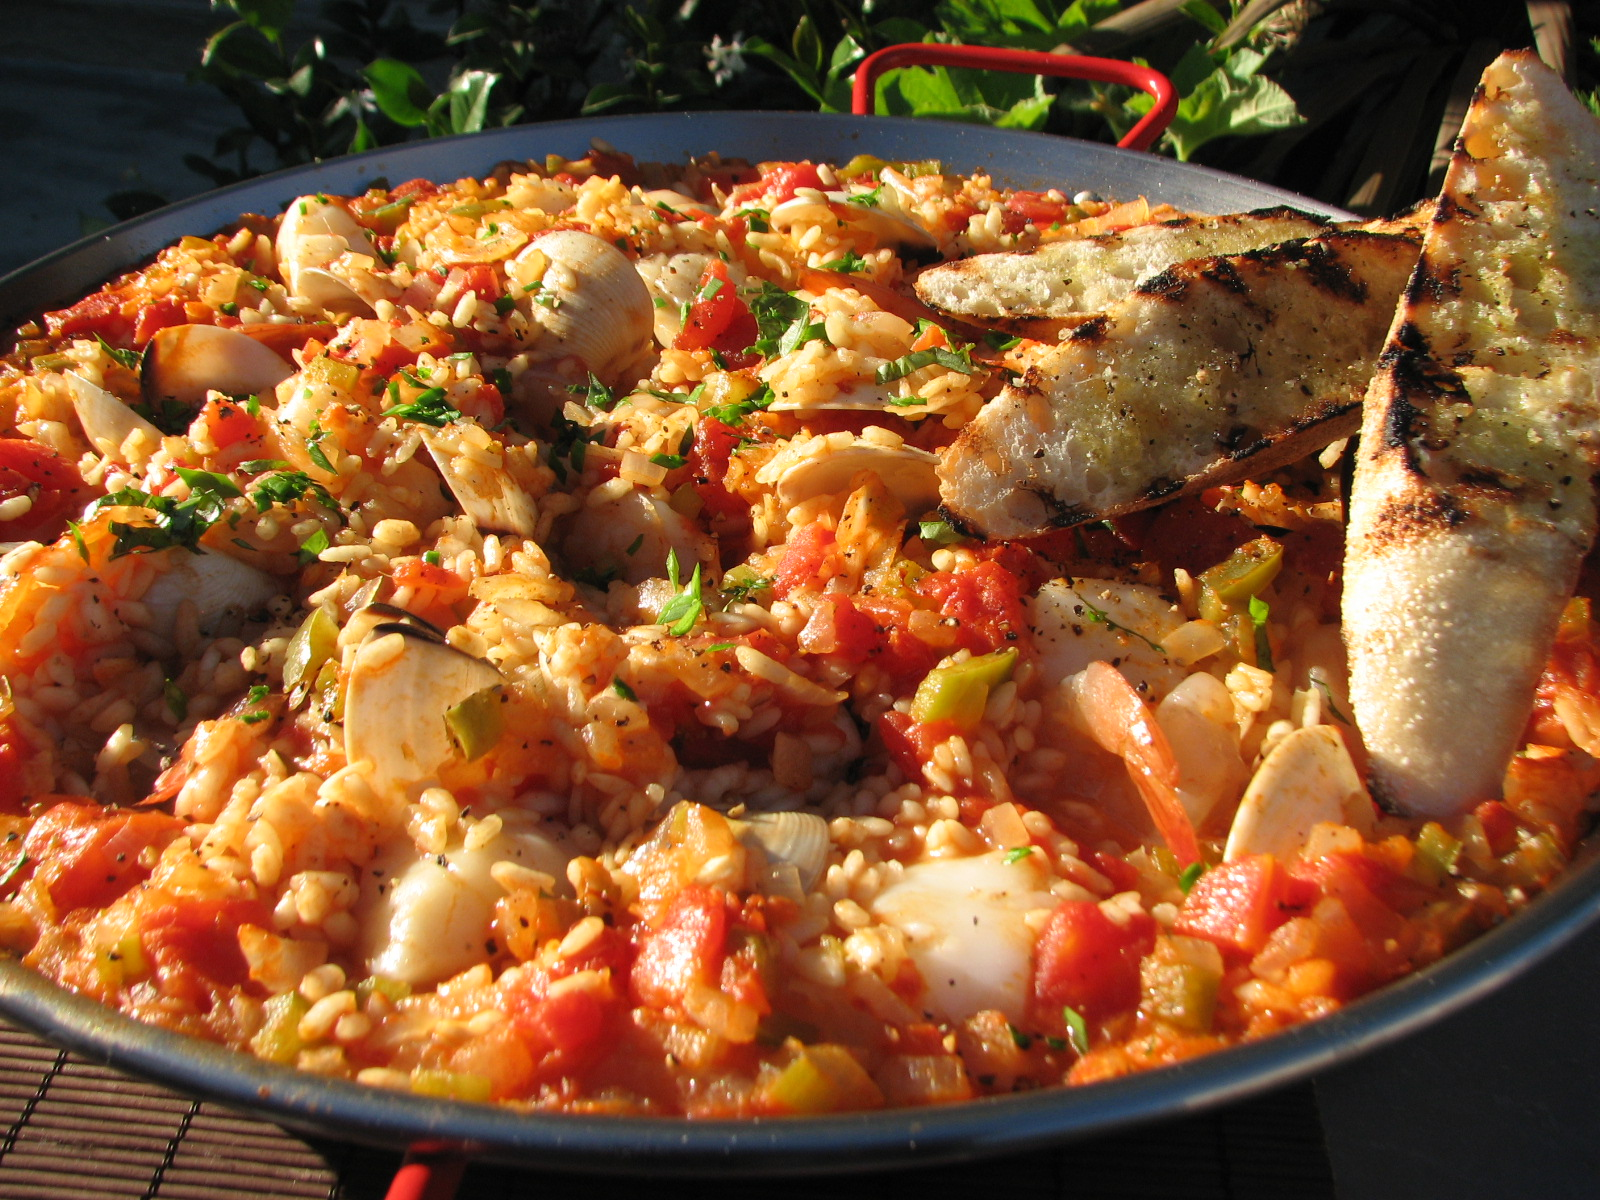 Here's the recipe if you would like some paella: